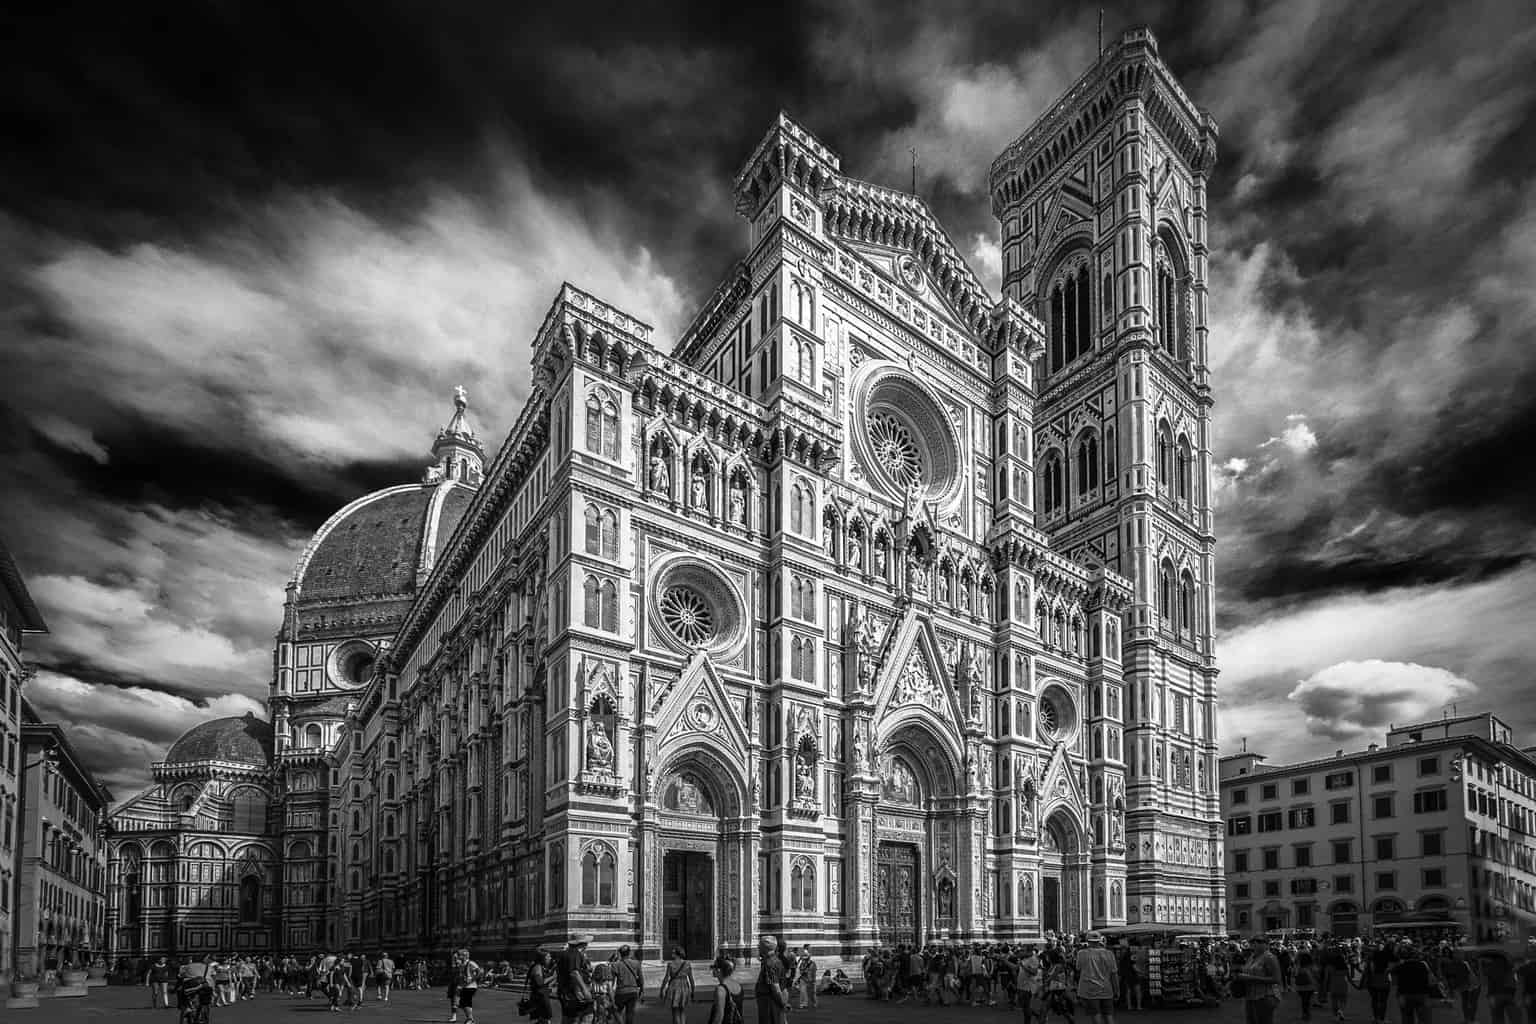 Duomo. Florence. A picture of stunning architecture in Italy.